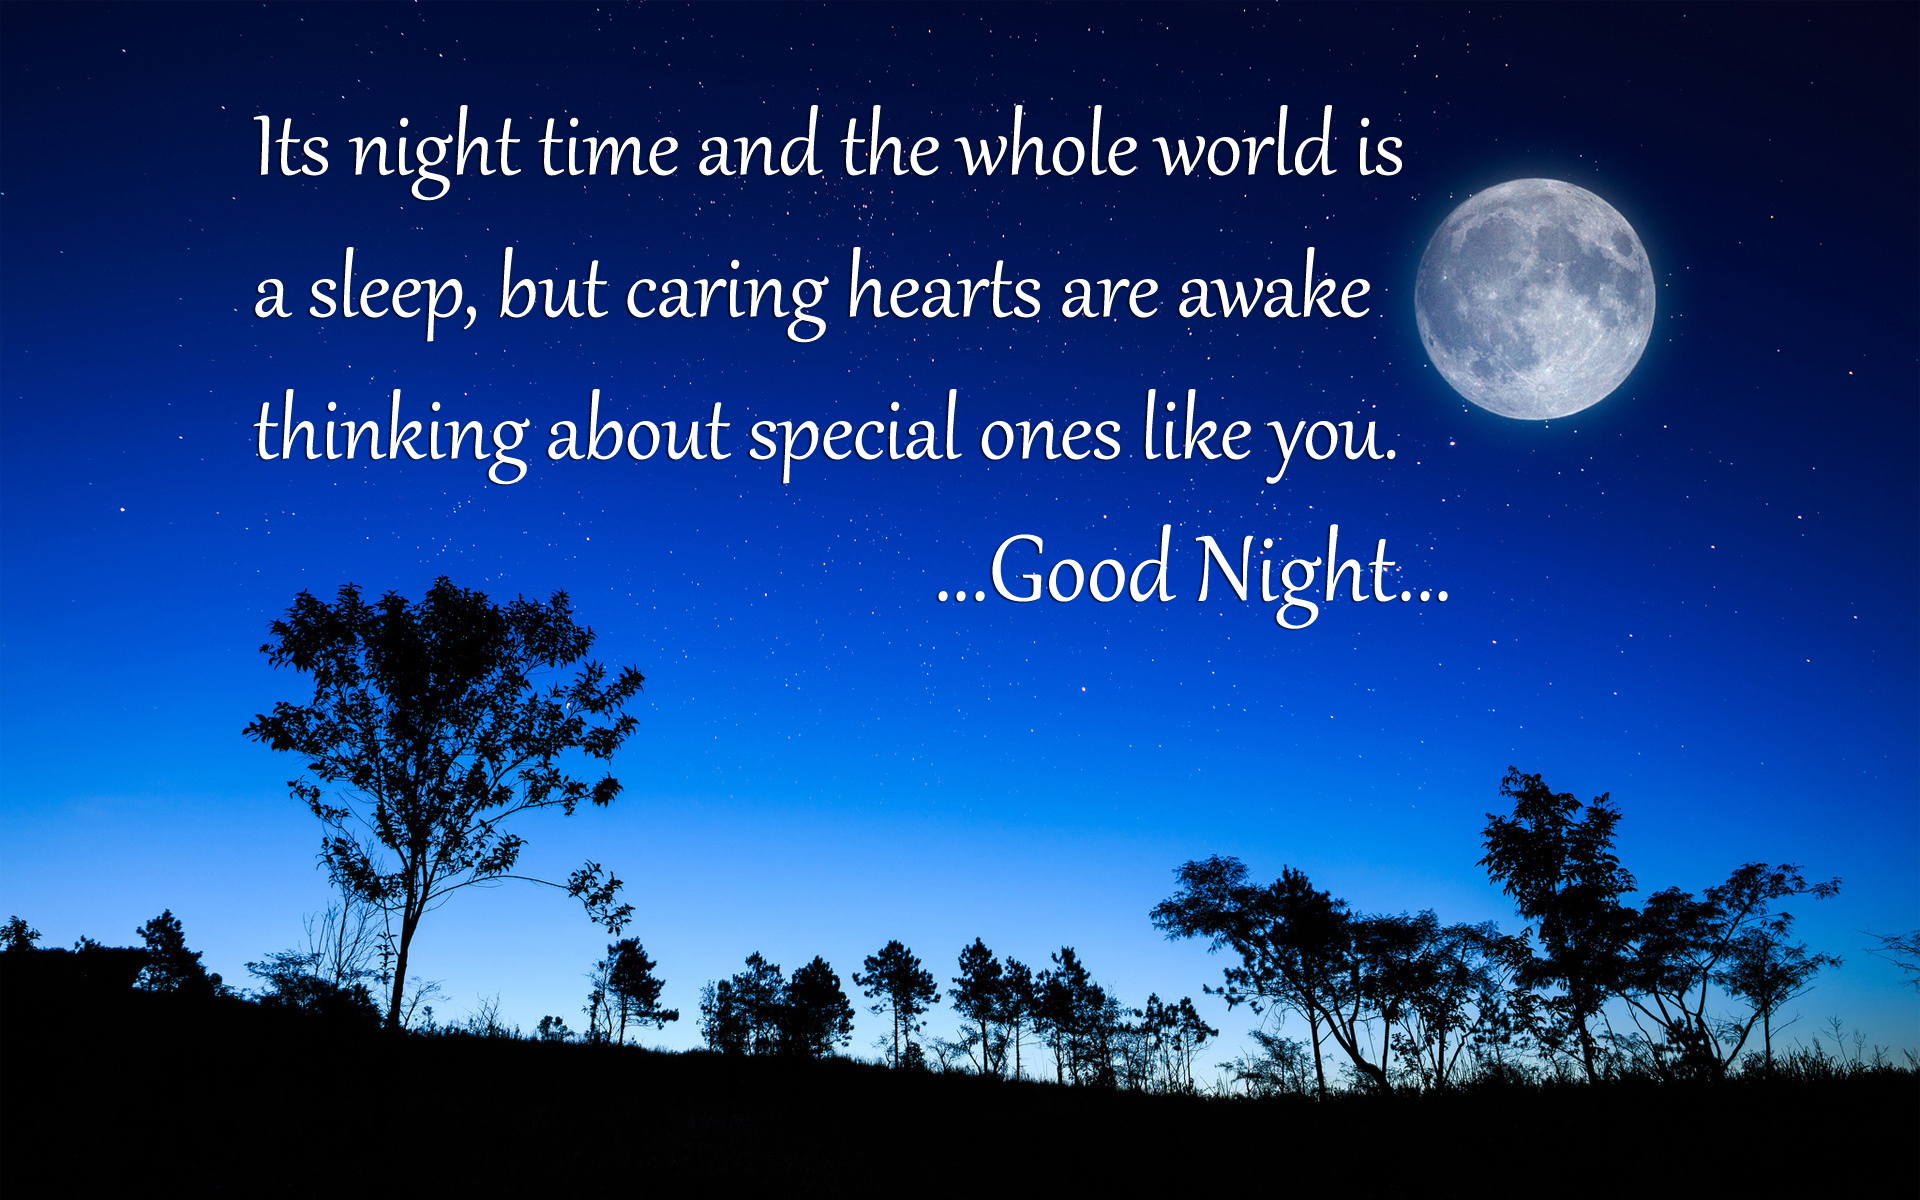 Beautiful Good Night Quote Hd Wallpapers - Beautiful Good Night Thoughts - HD Wallpaper